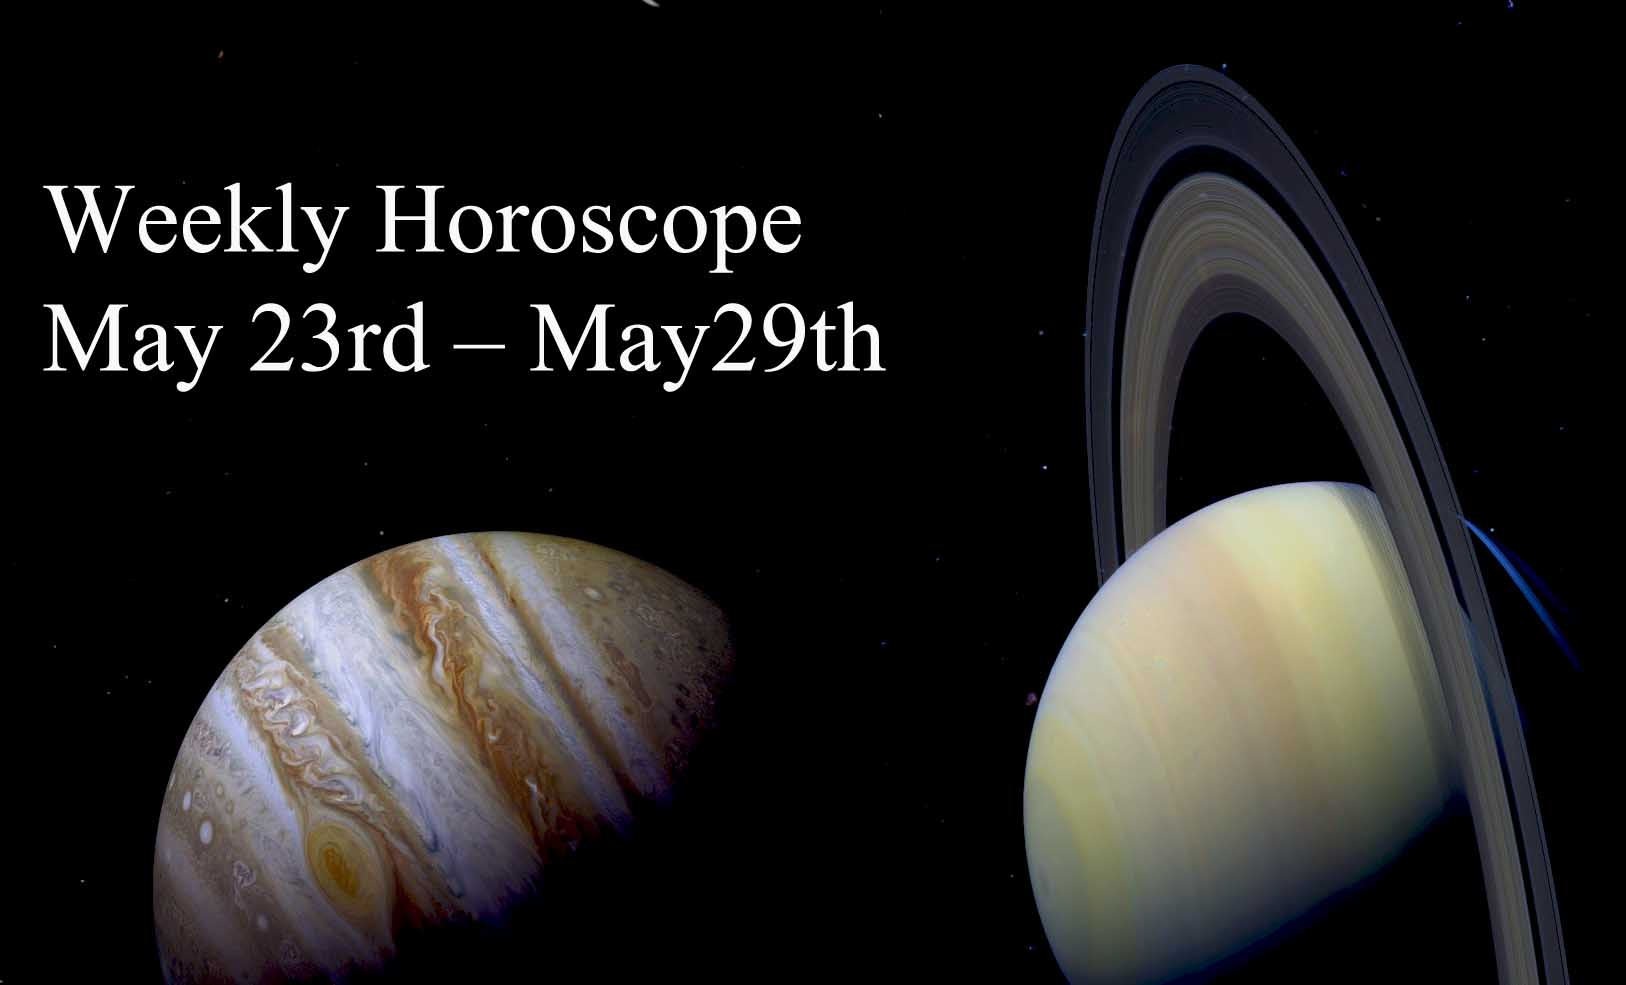 Weekly Horoscope: May 23rd – May29th: Venus in Gemini, Mars retrograde in Scorpio, Jupiter square Saturn